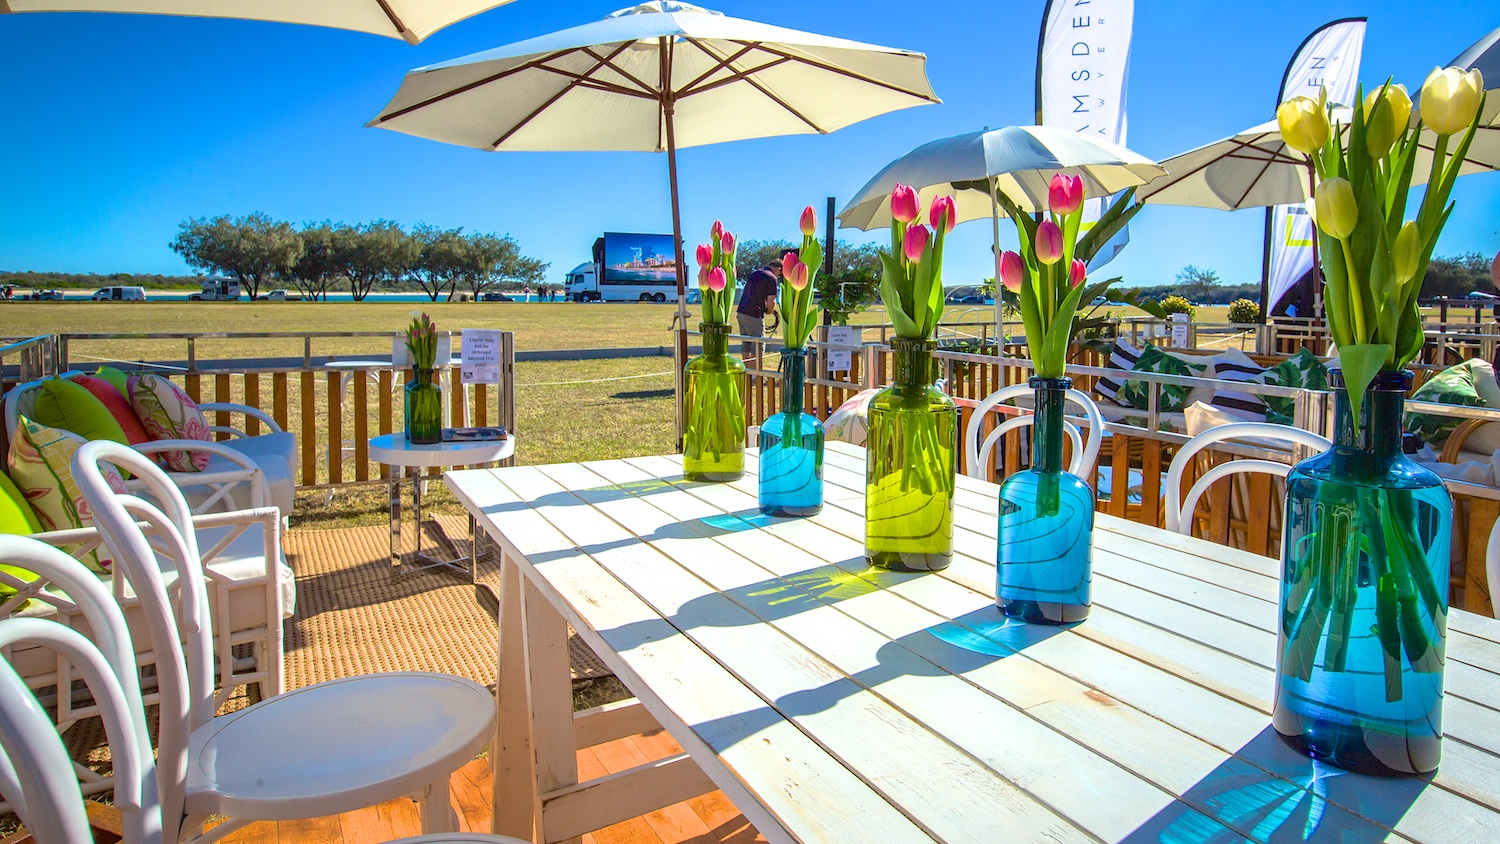 Brisbane commercial photographer for event furniture and decor hire